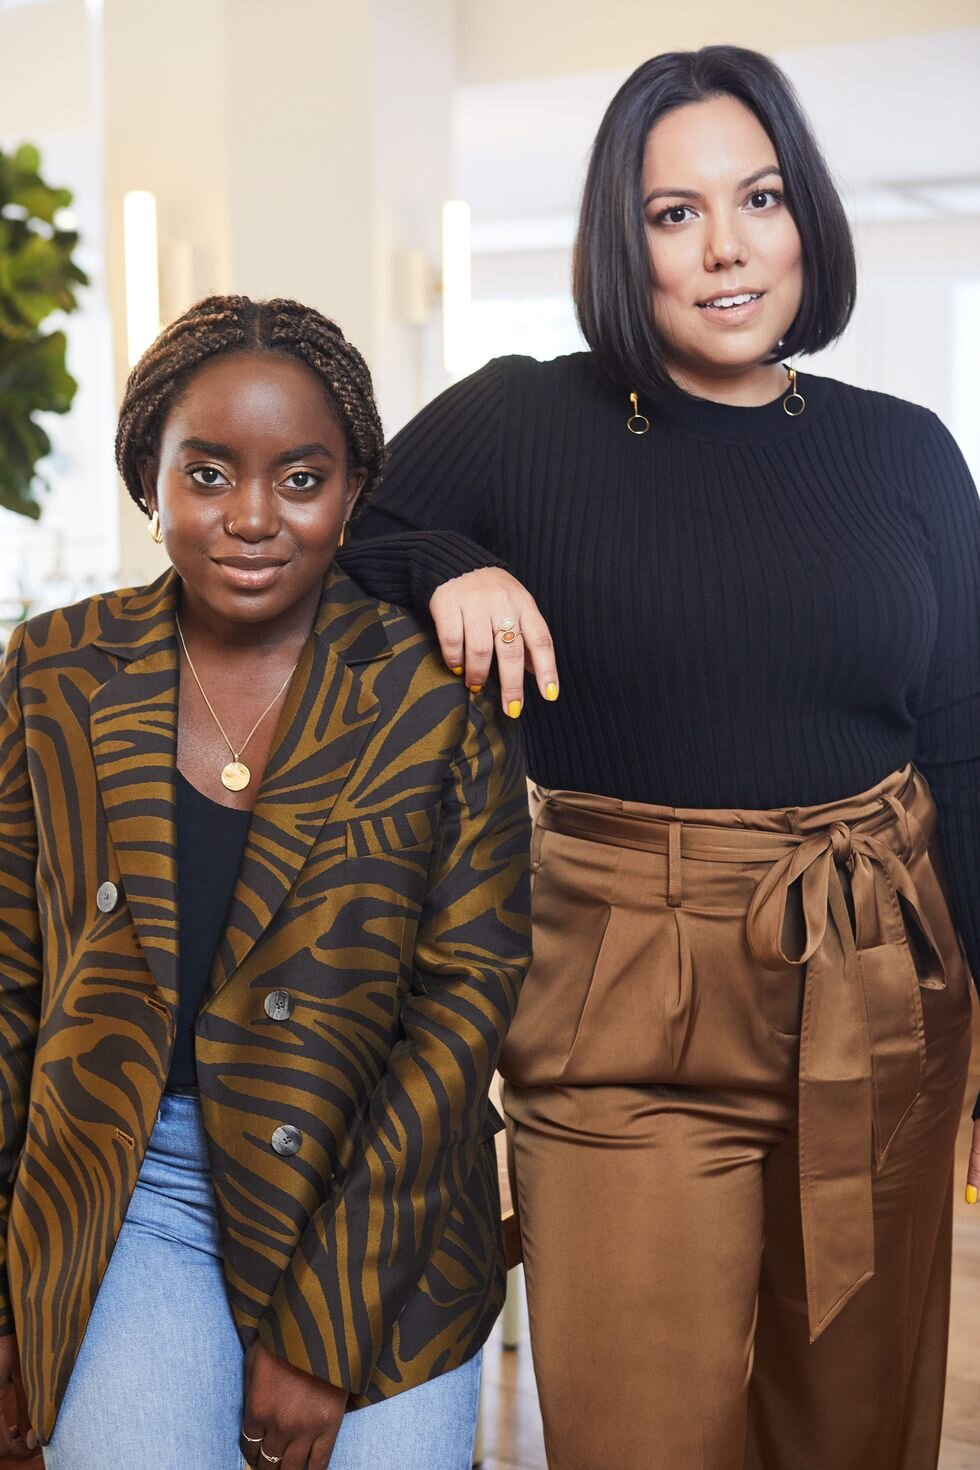 Mandi Nyambi (left) and Lanya Olmsted (right) at The Wing DUMBO  Taea Thale